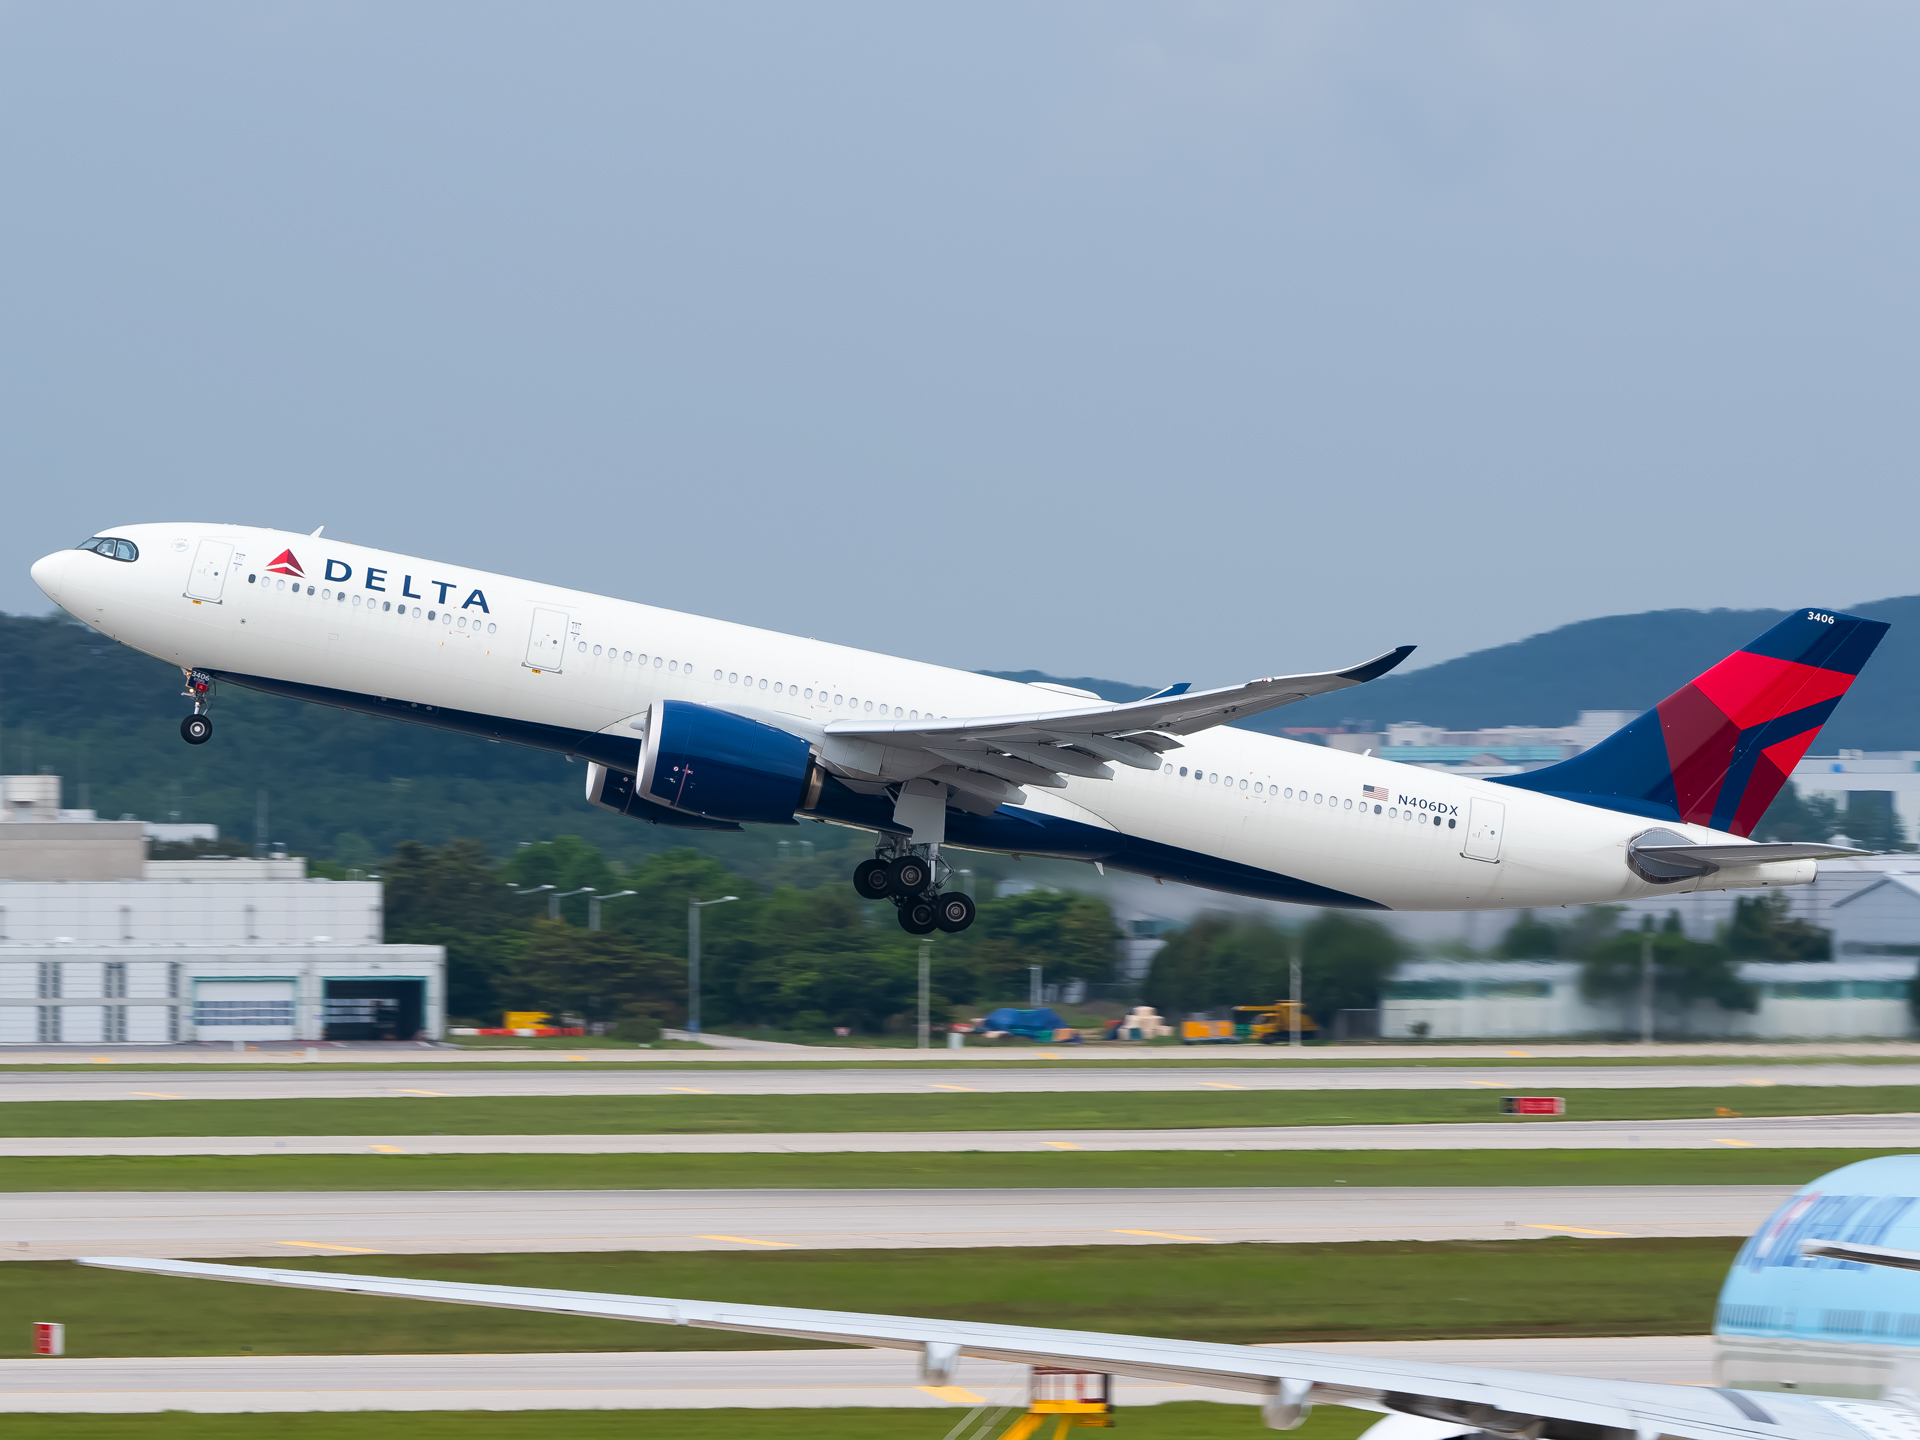 Photo of N406DX - Delta Airlines Airbus A330-900 at ICN